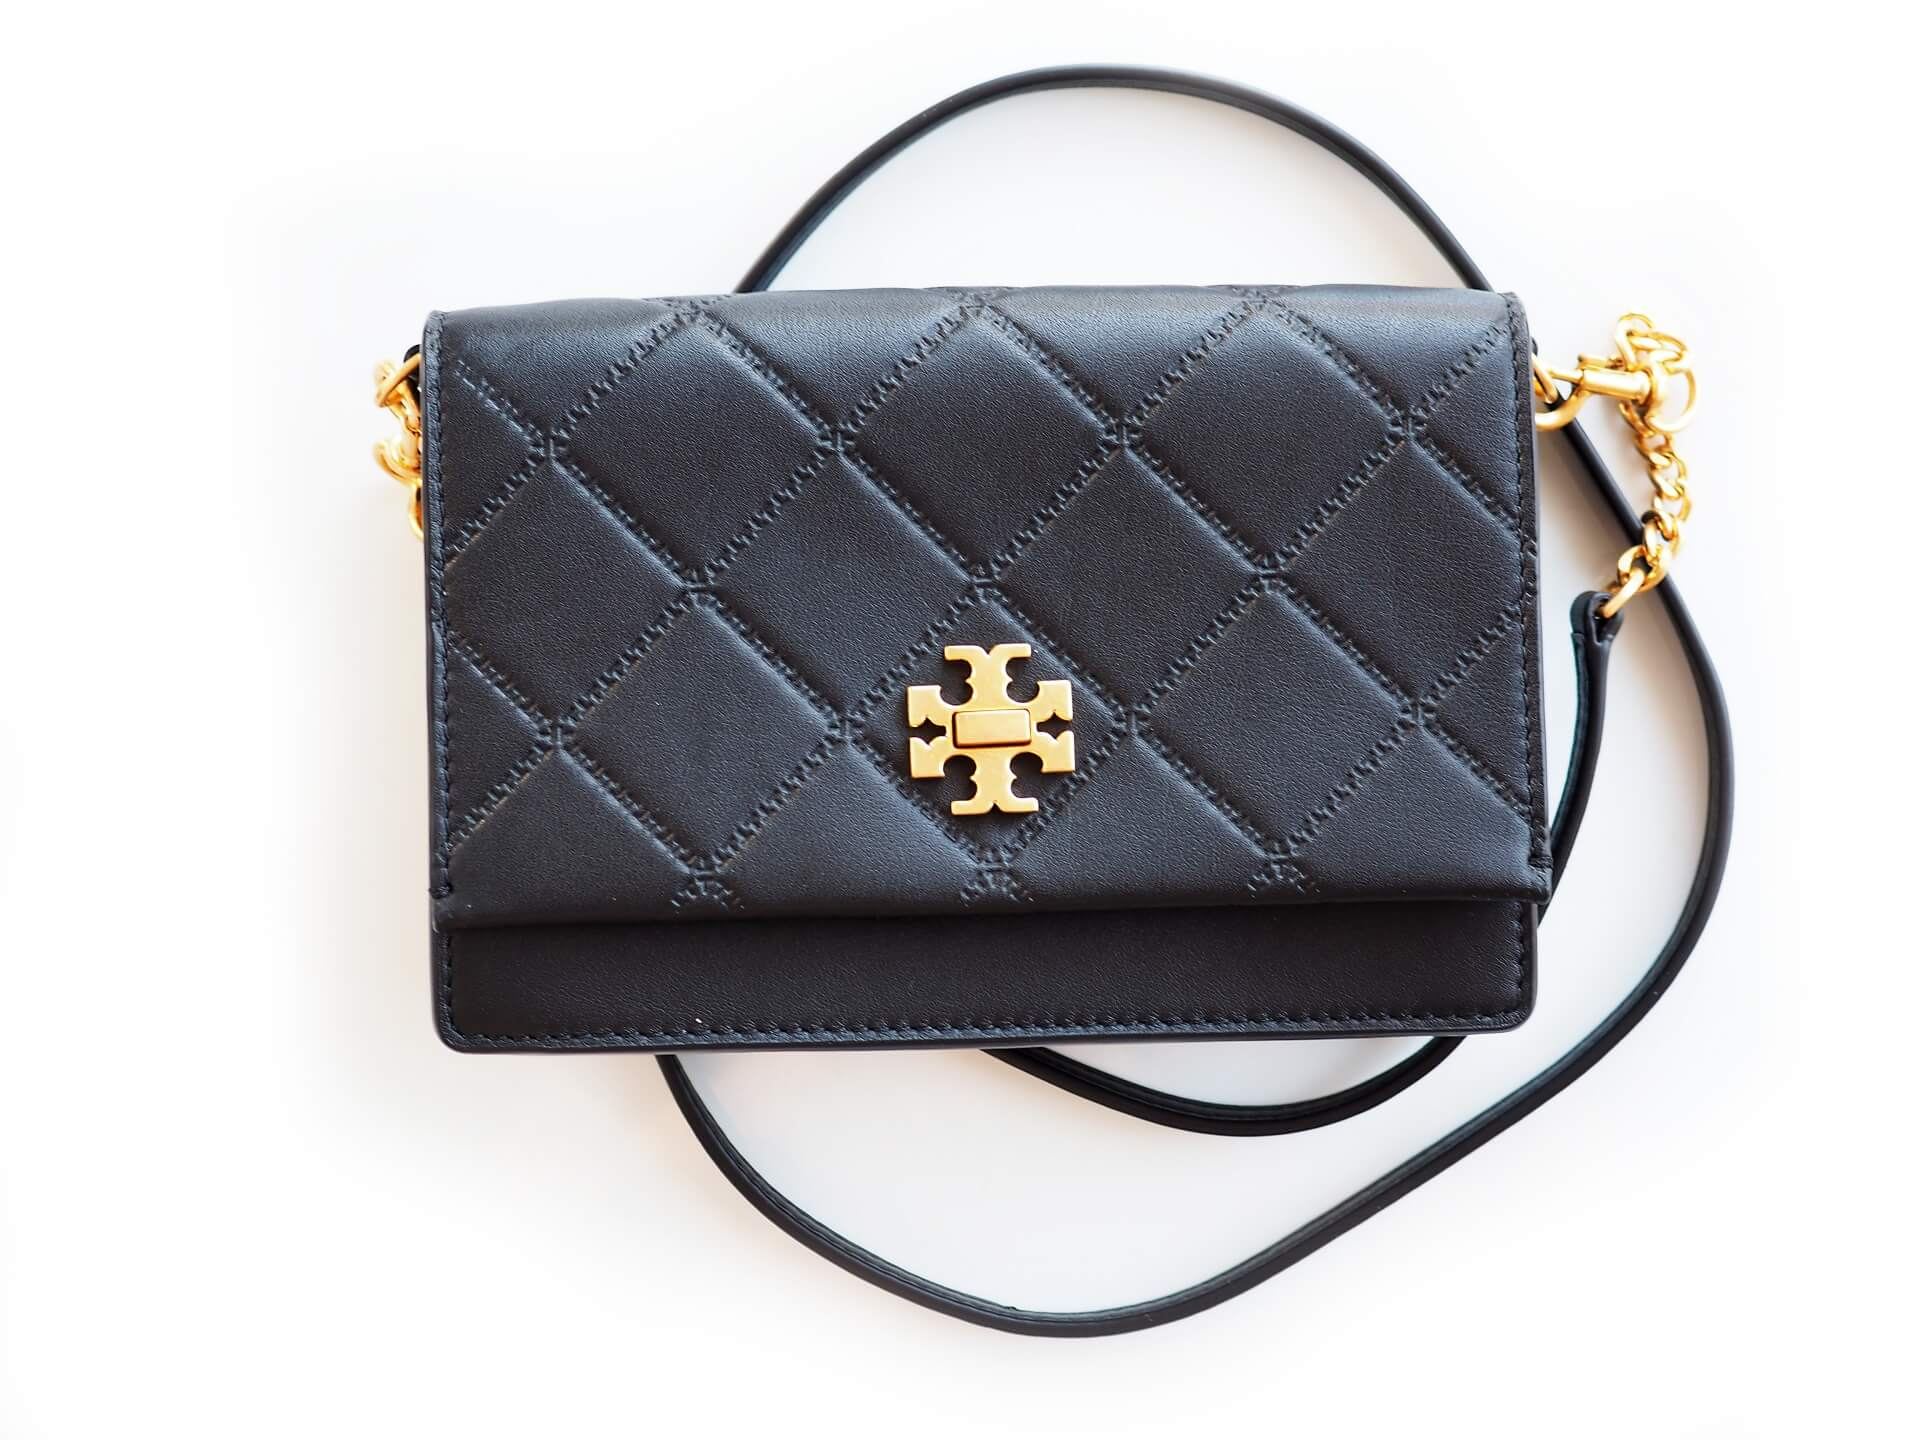 Tory Burch- GEORGIA TURN LOCK MINI BAG